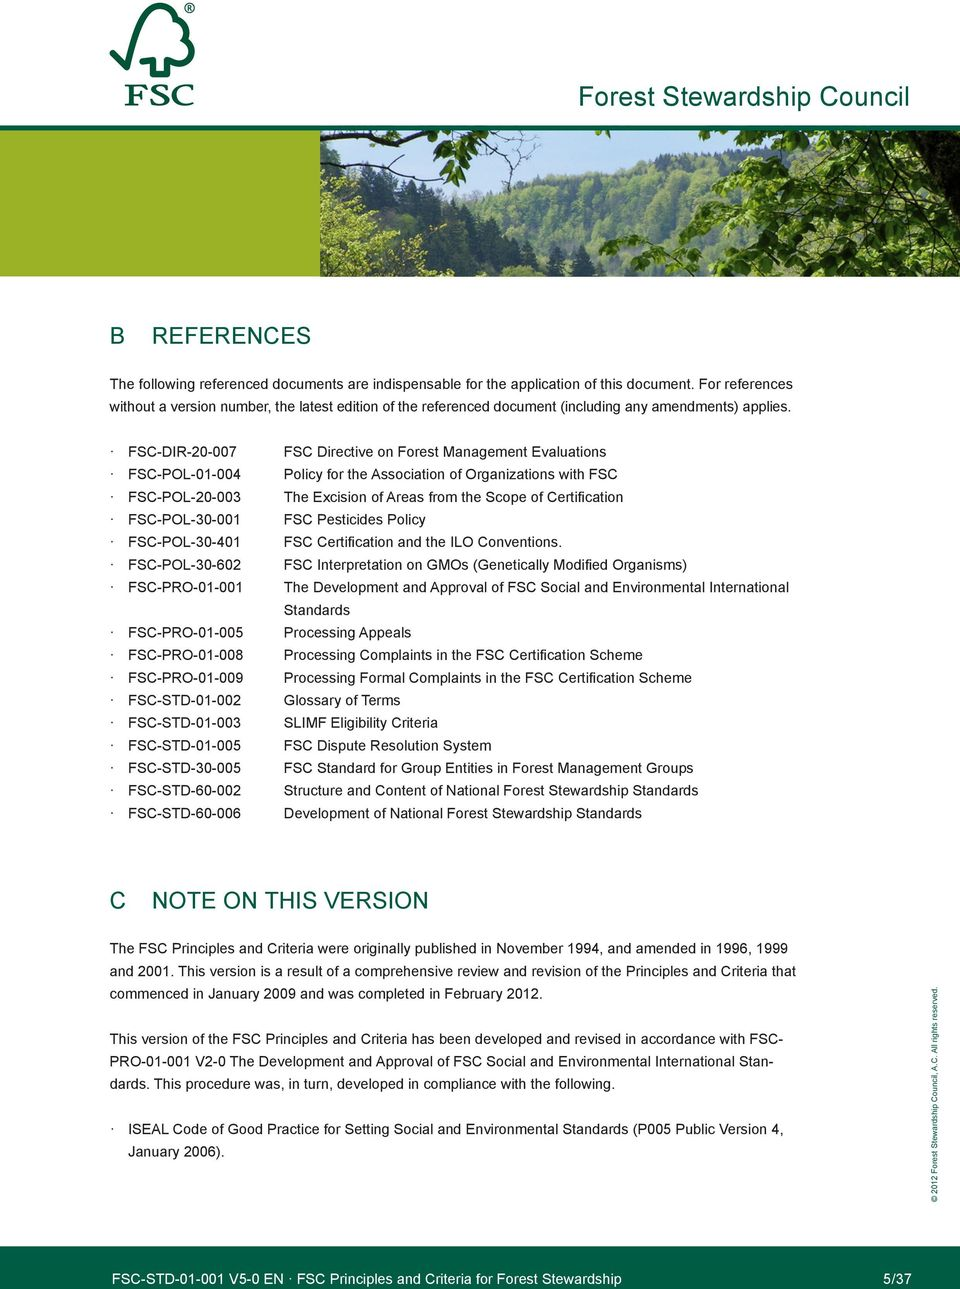 FSC-dIr-20-007 FSC directive on Forest Management evaluations FSC-Pol-01-004 Policy for the association of organizations with FSC FSC-Pol-30-001 FSC Pesticides Policy FSC-Pro-01-001 the development